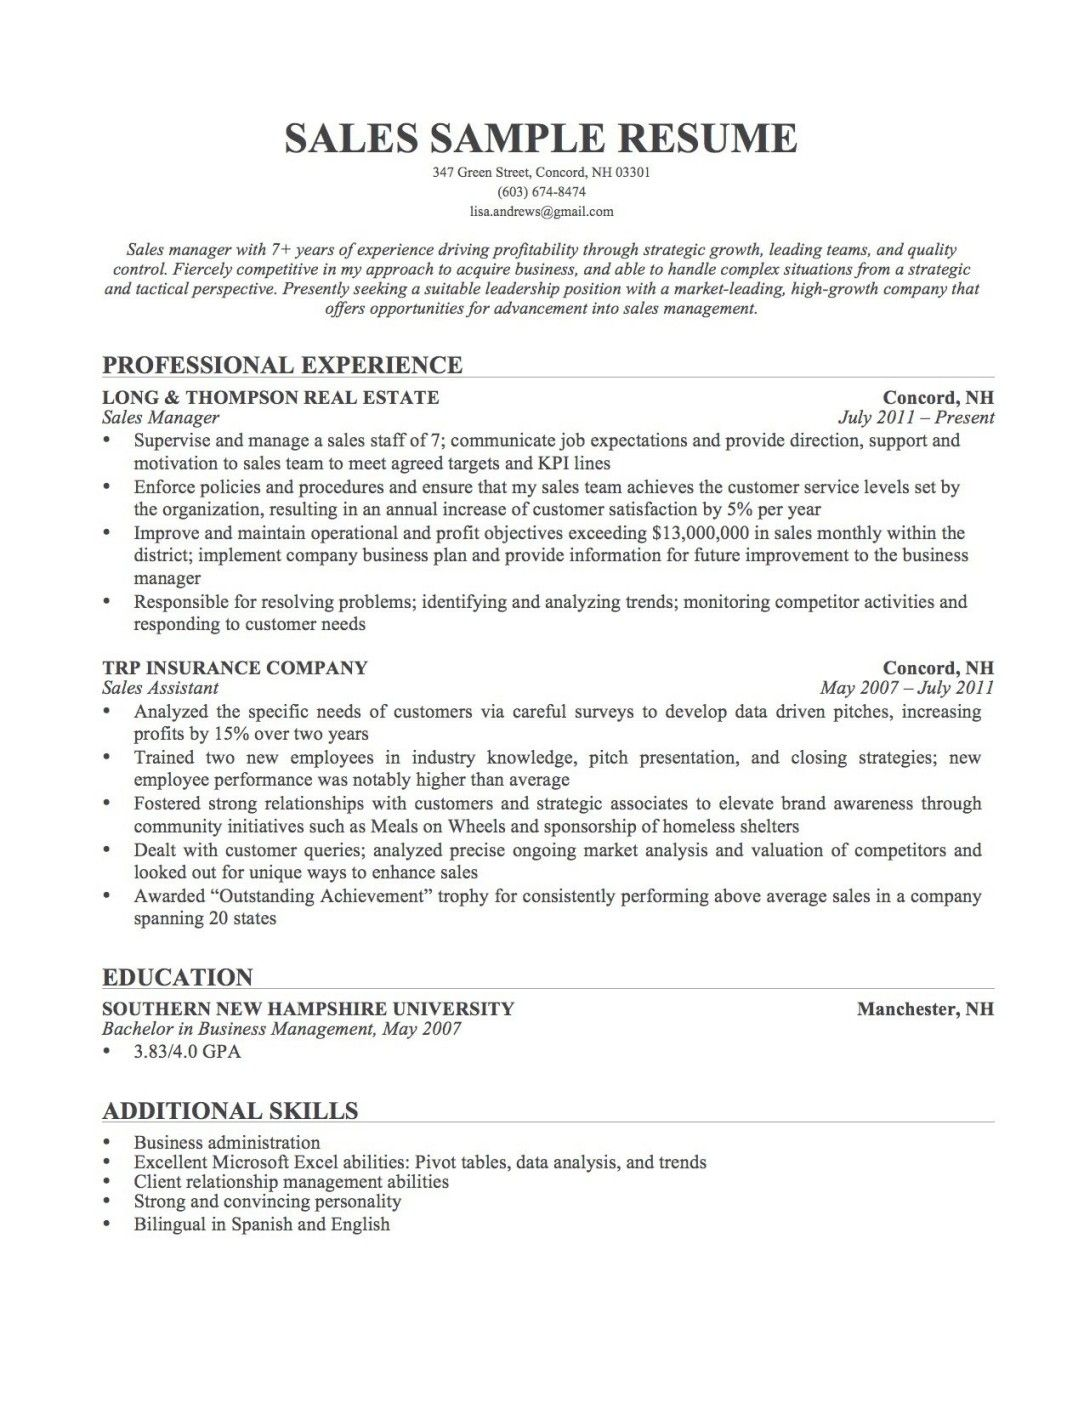 Describe Yourself (med billeder) Resume, Free